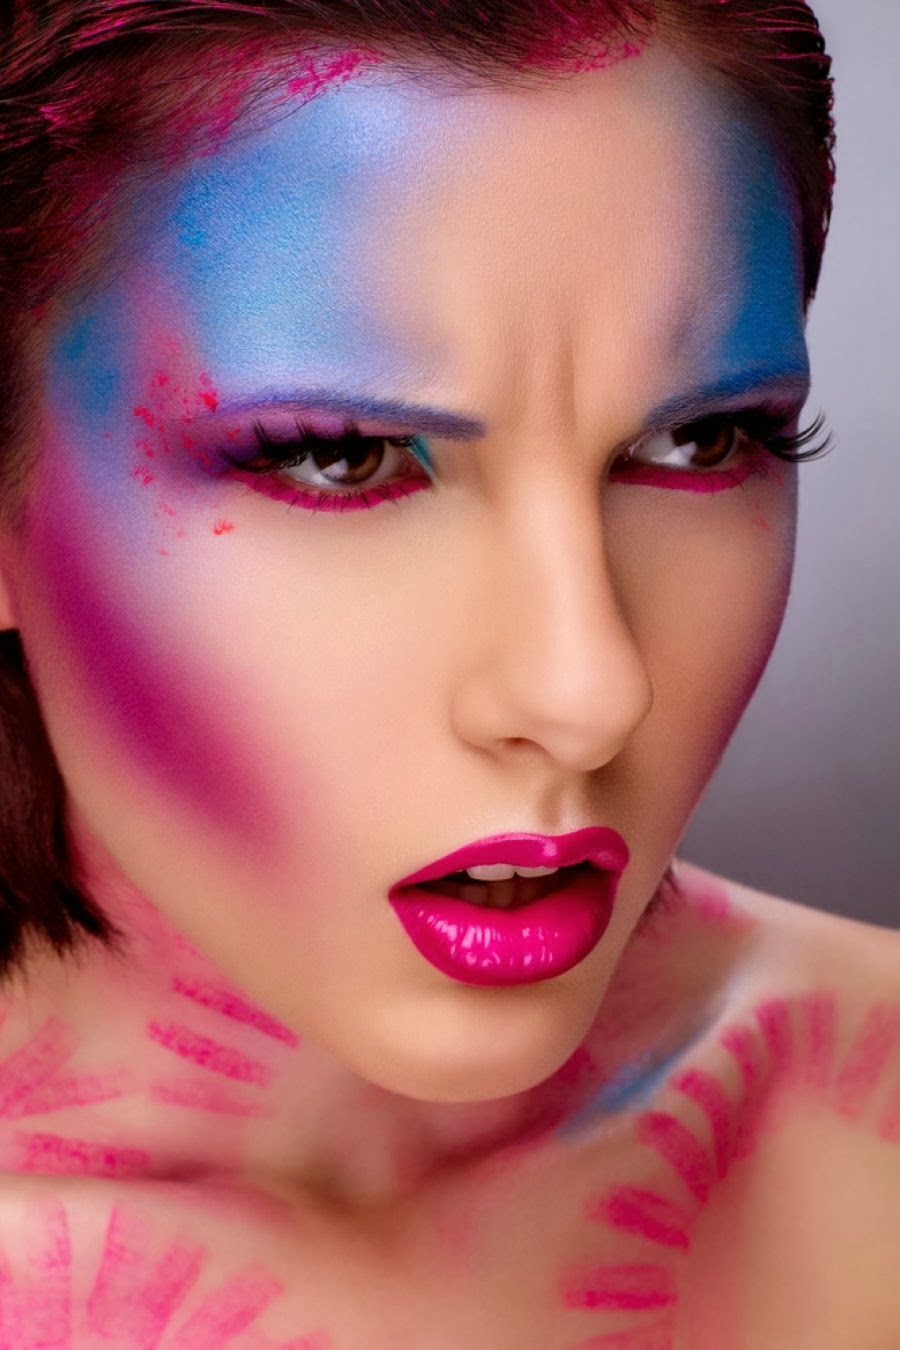 Best Incredibly Awesome Beauty And Makeup Portraits